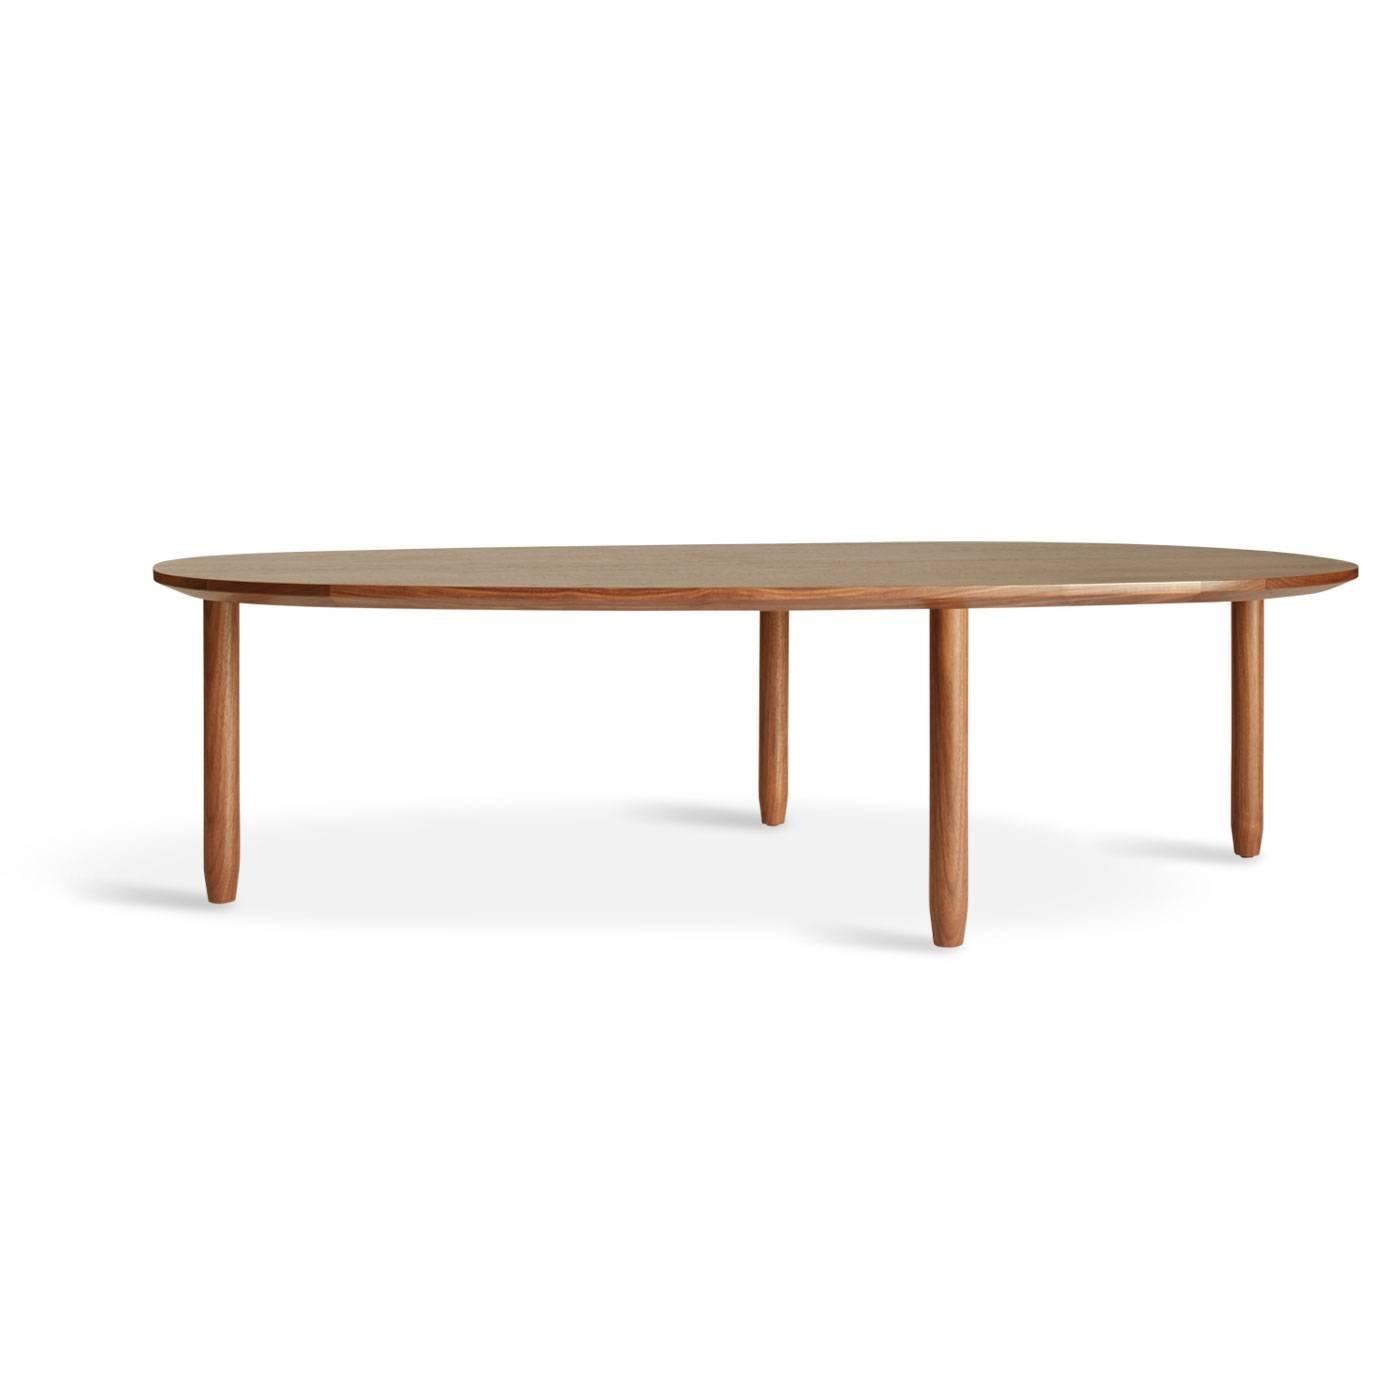 Swole Large Table – Large Modern Coffee Table | Blu Dot Intended For Large Low Wood Coffee Tables (View 14 of 30)